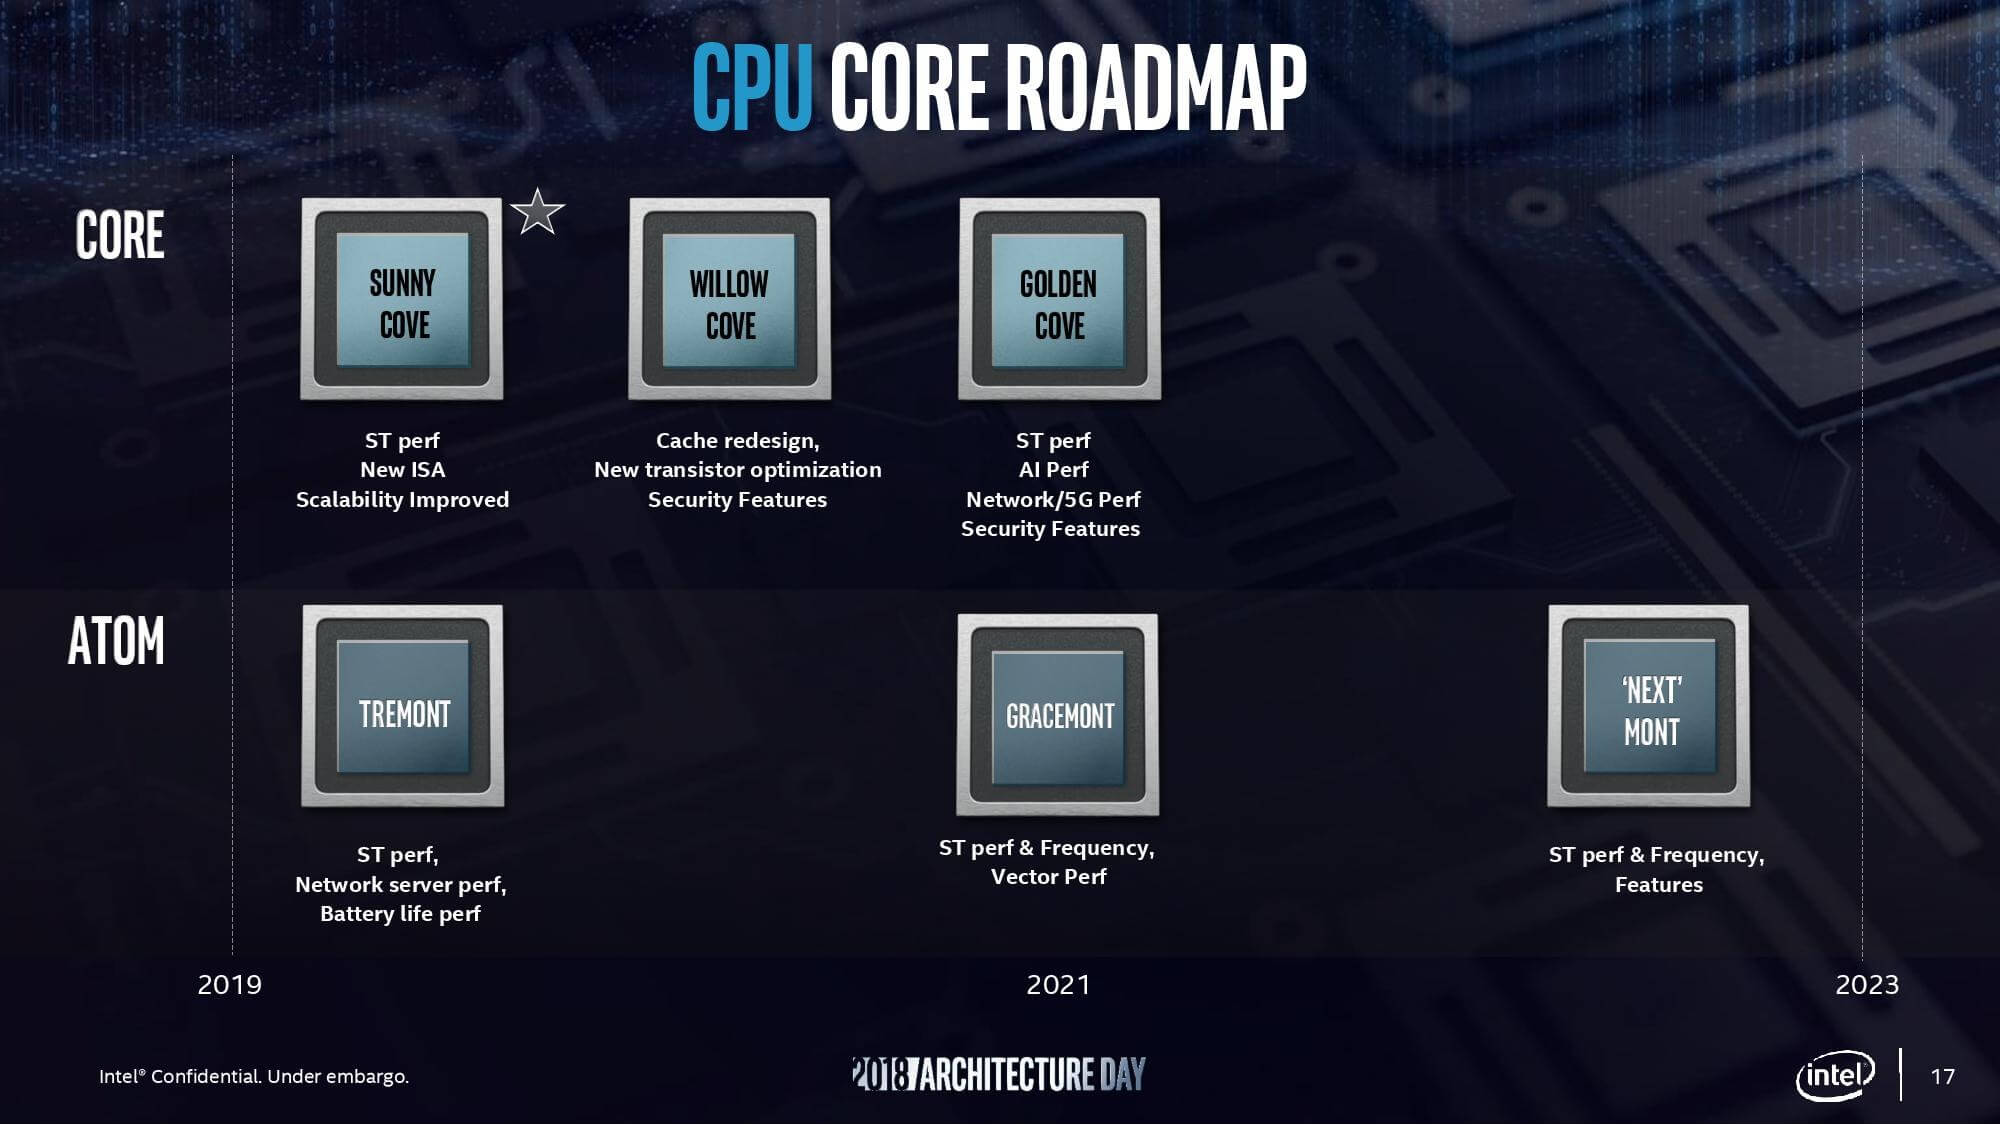 Leaked Intel roadmap shows its 10nm desktop CPUs won't